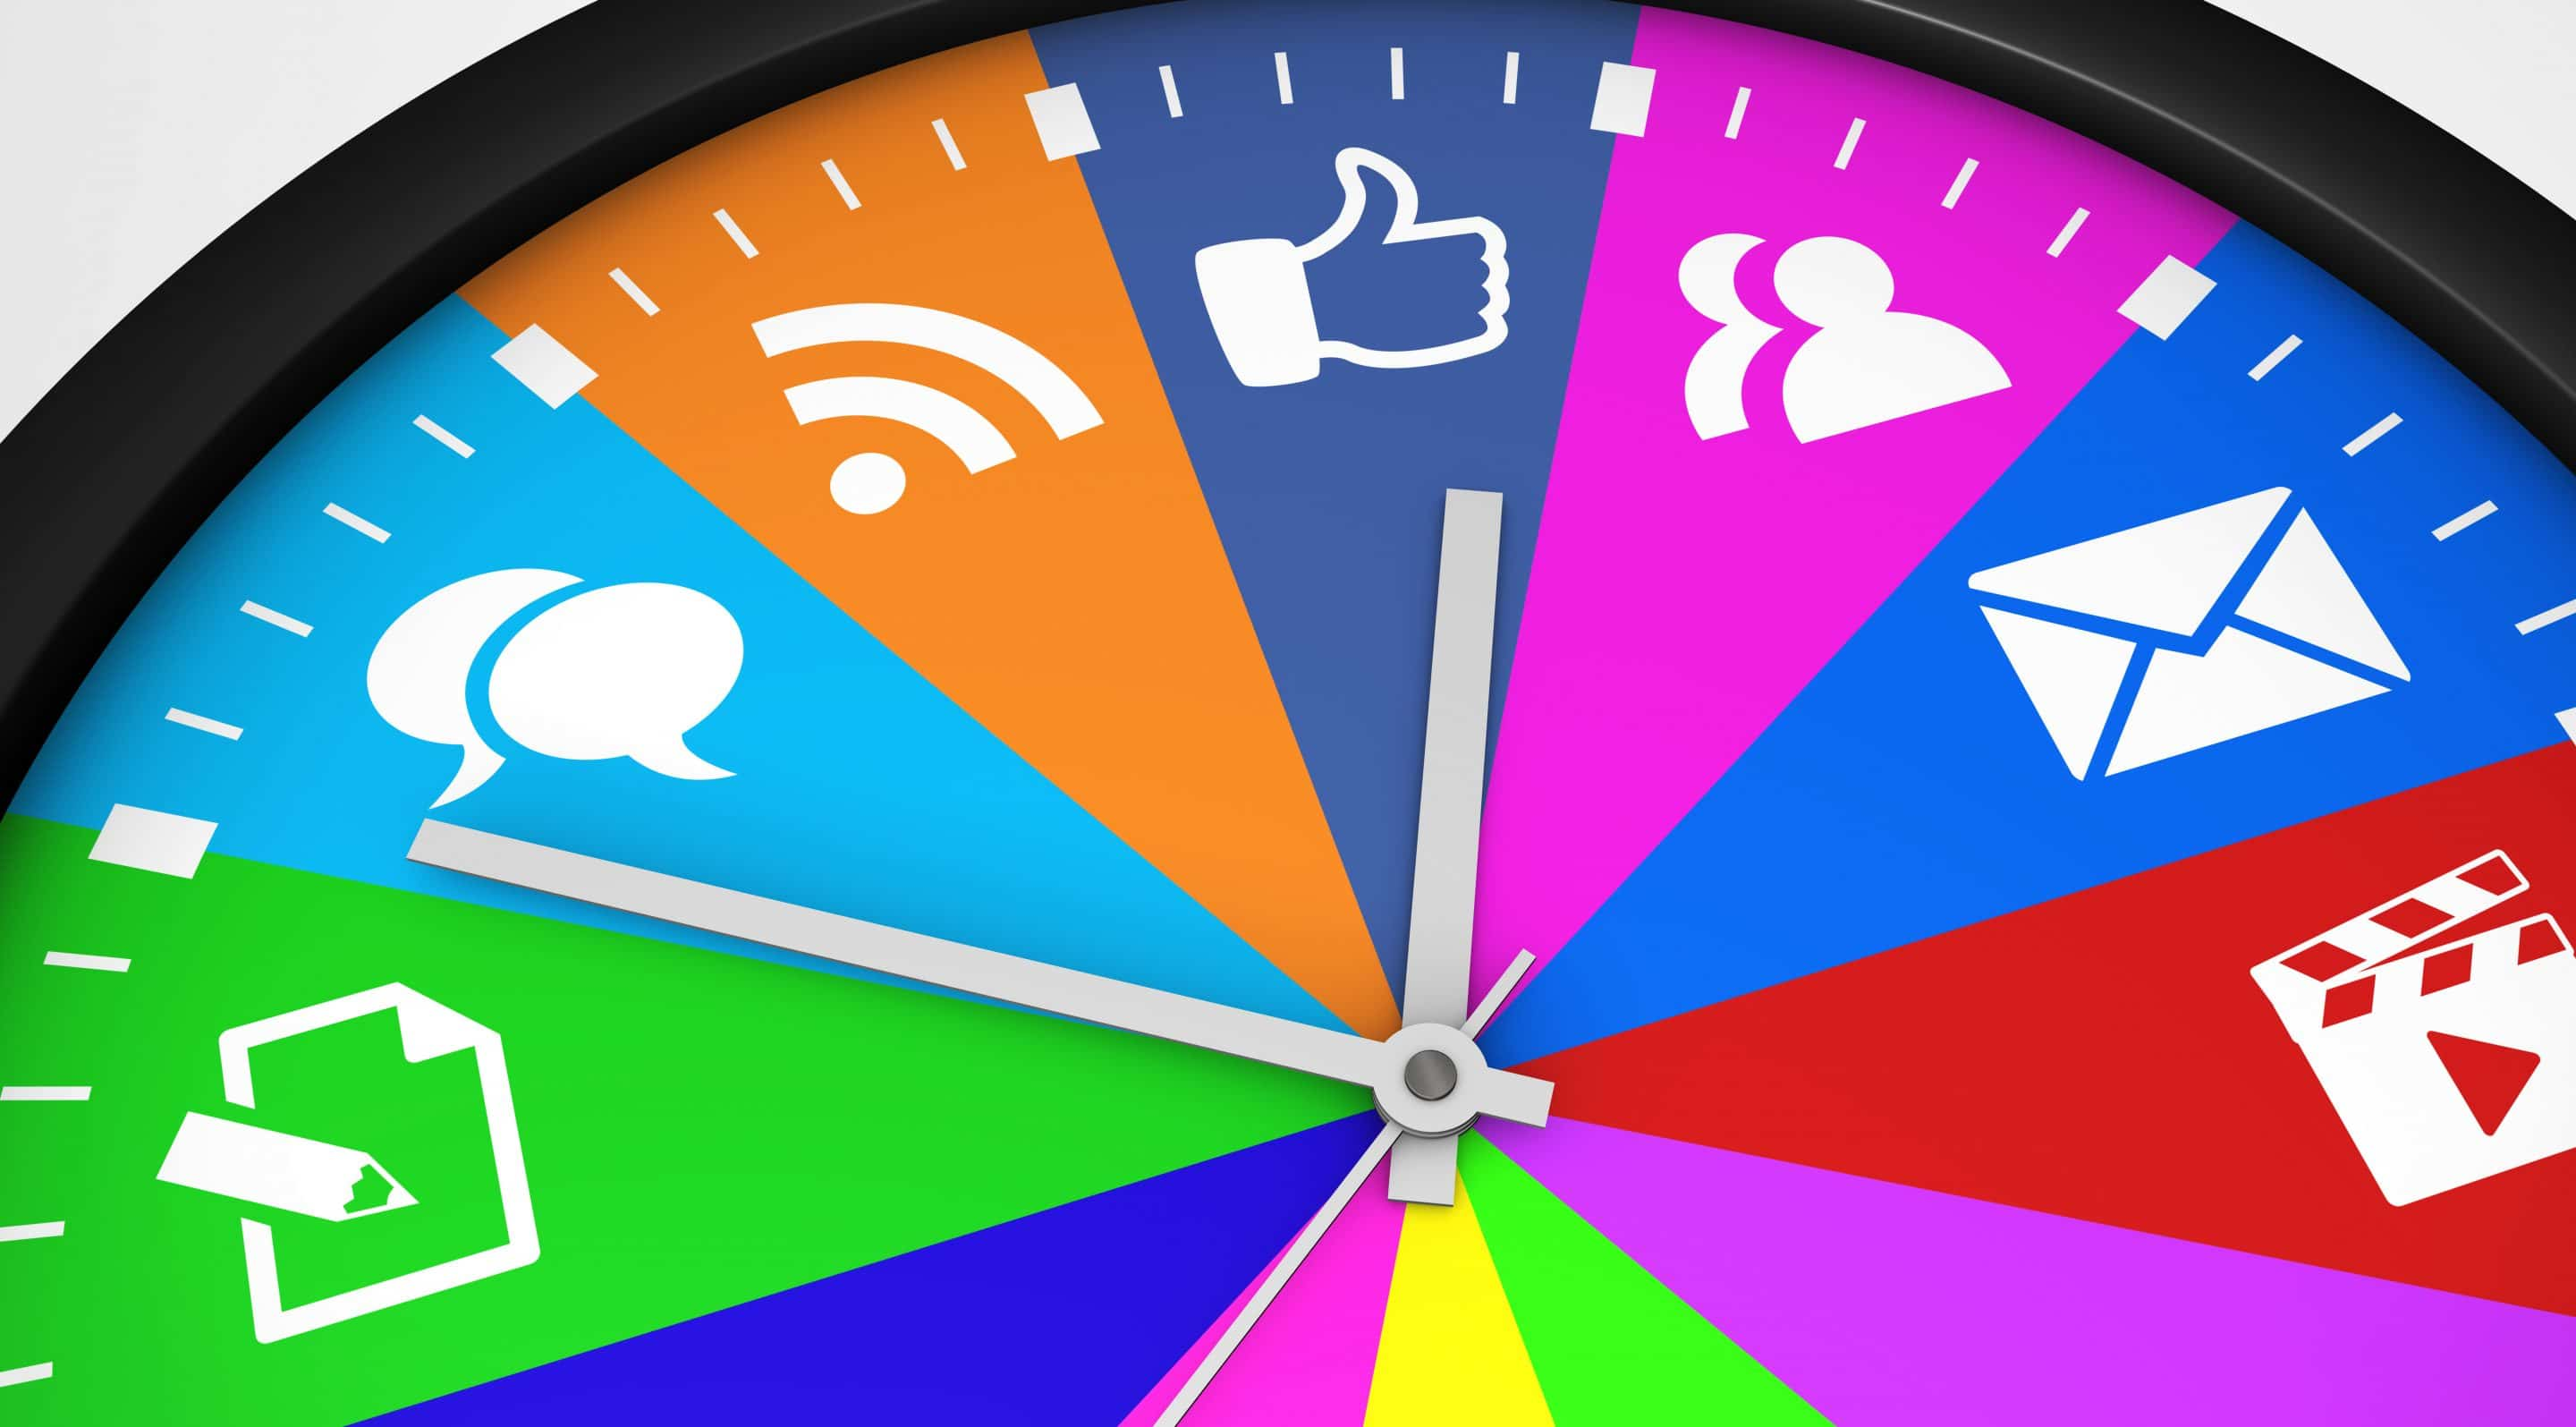 The Best Times to Post on Your Business' Social Media Pages